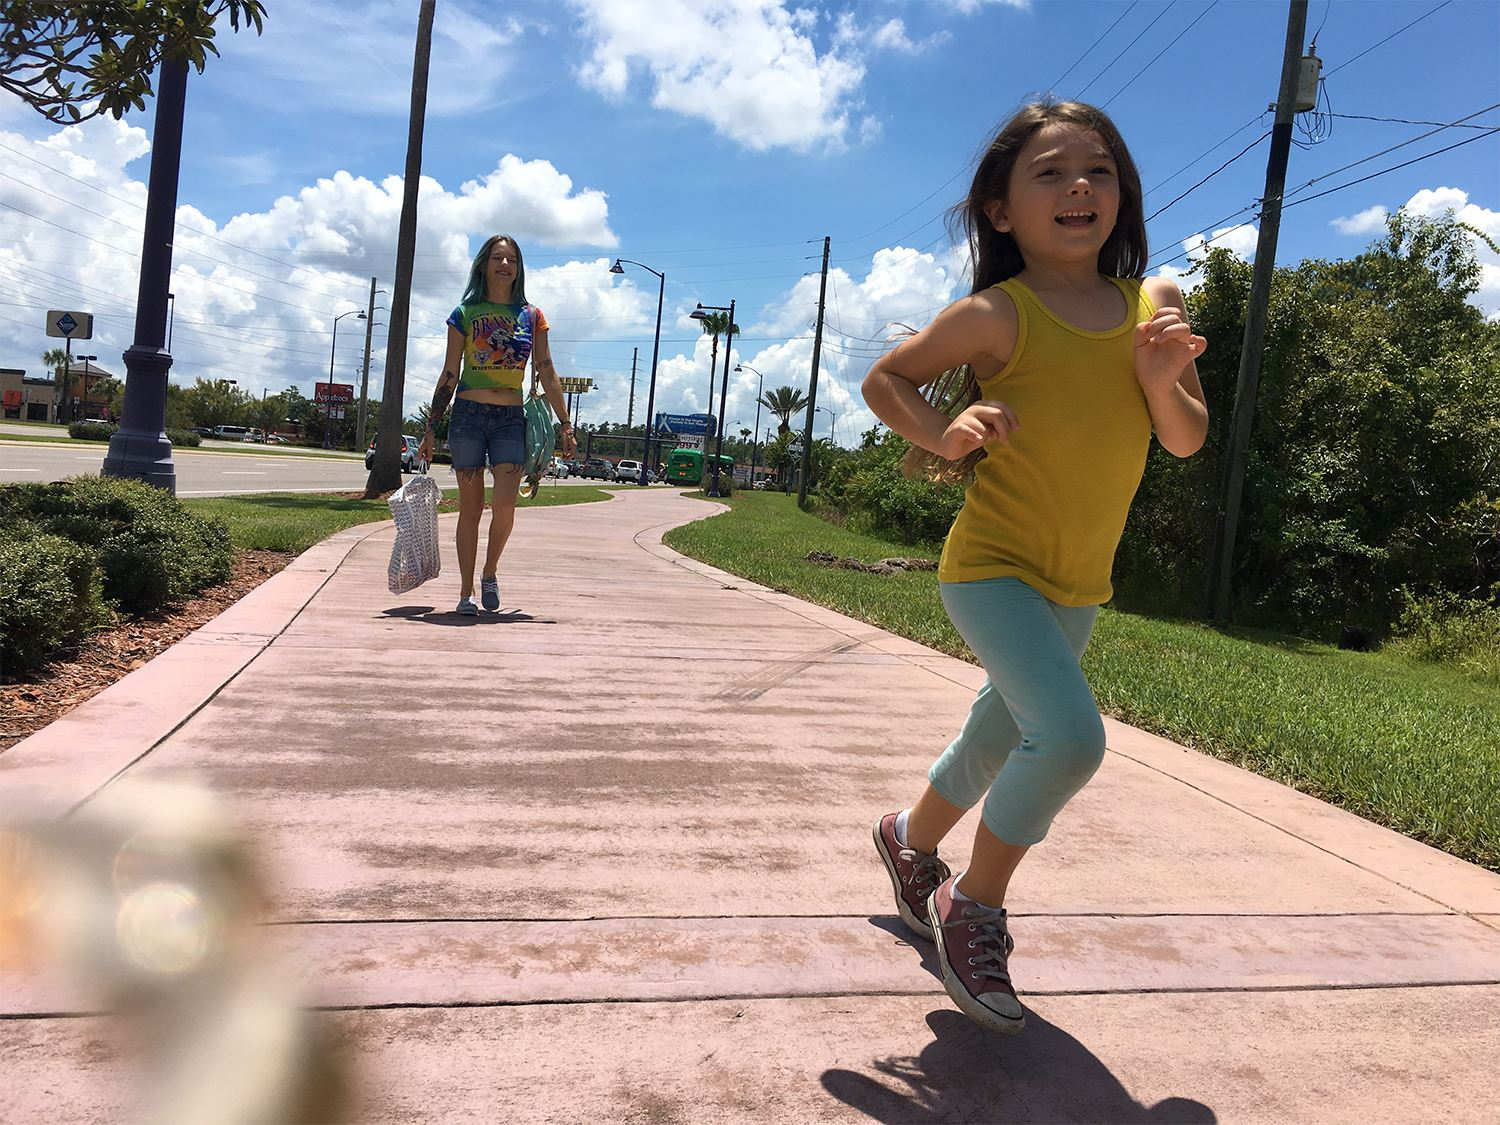 mom and daughter, in the florida project movie, best film